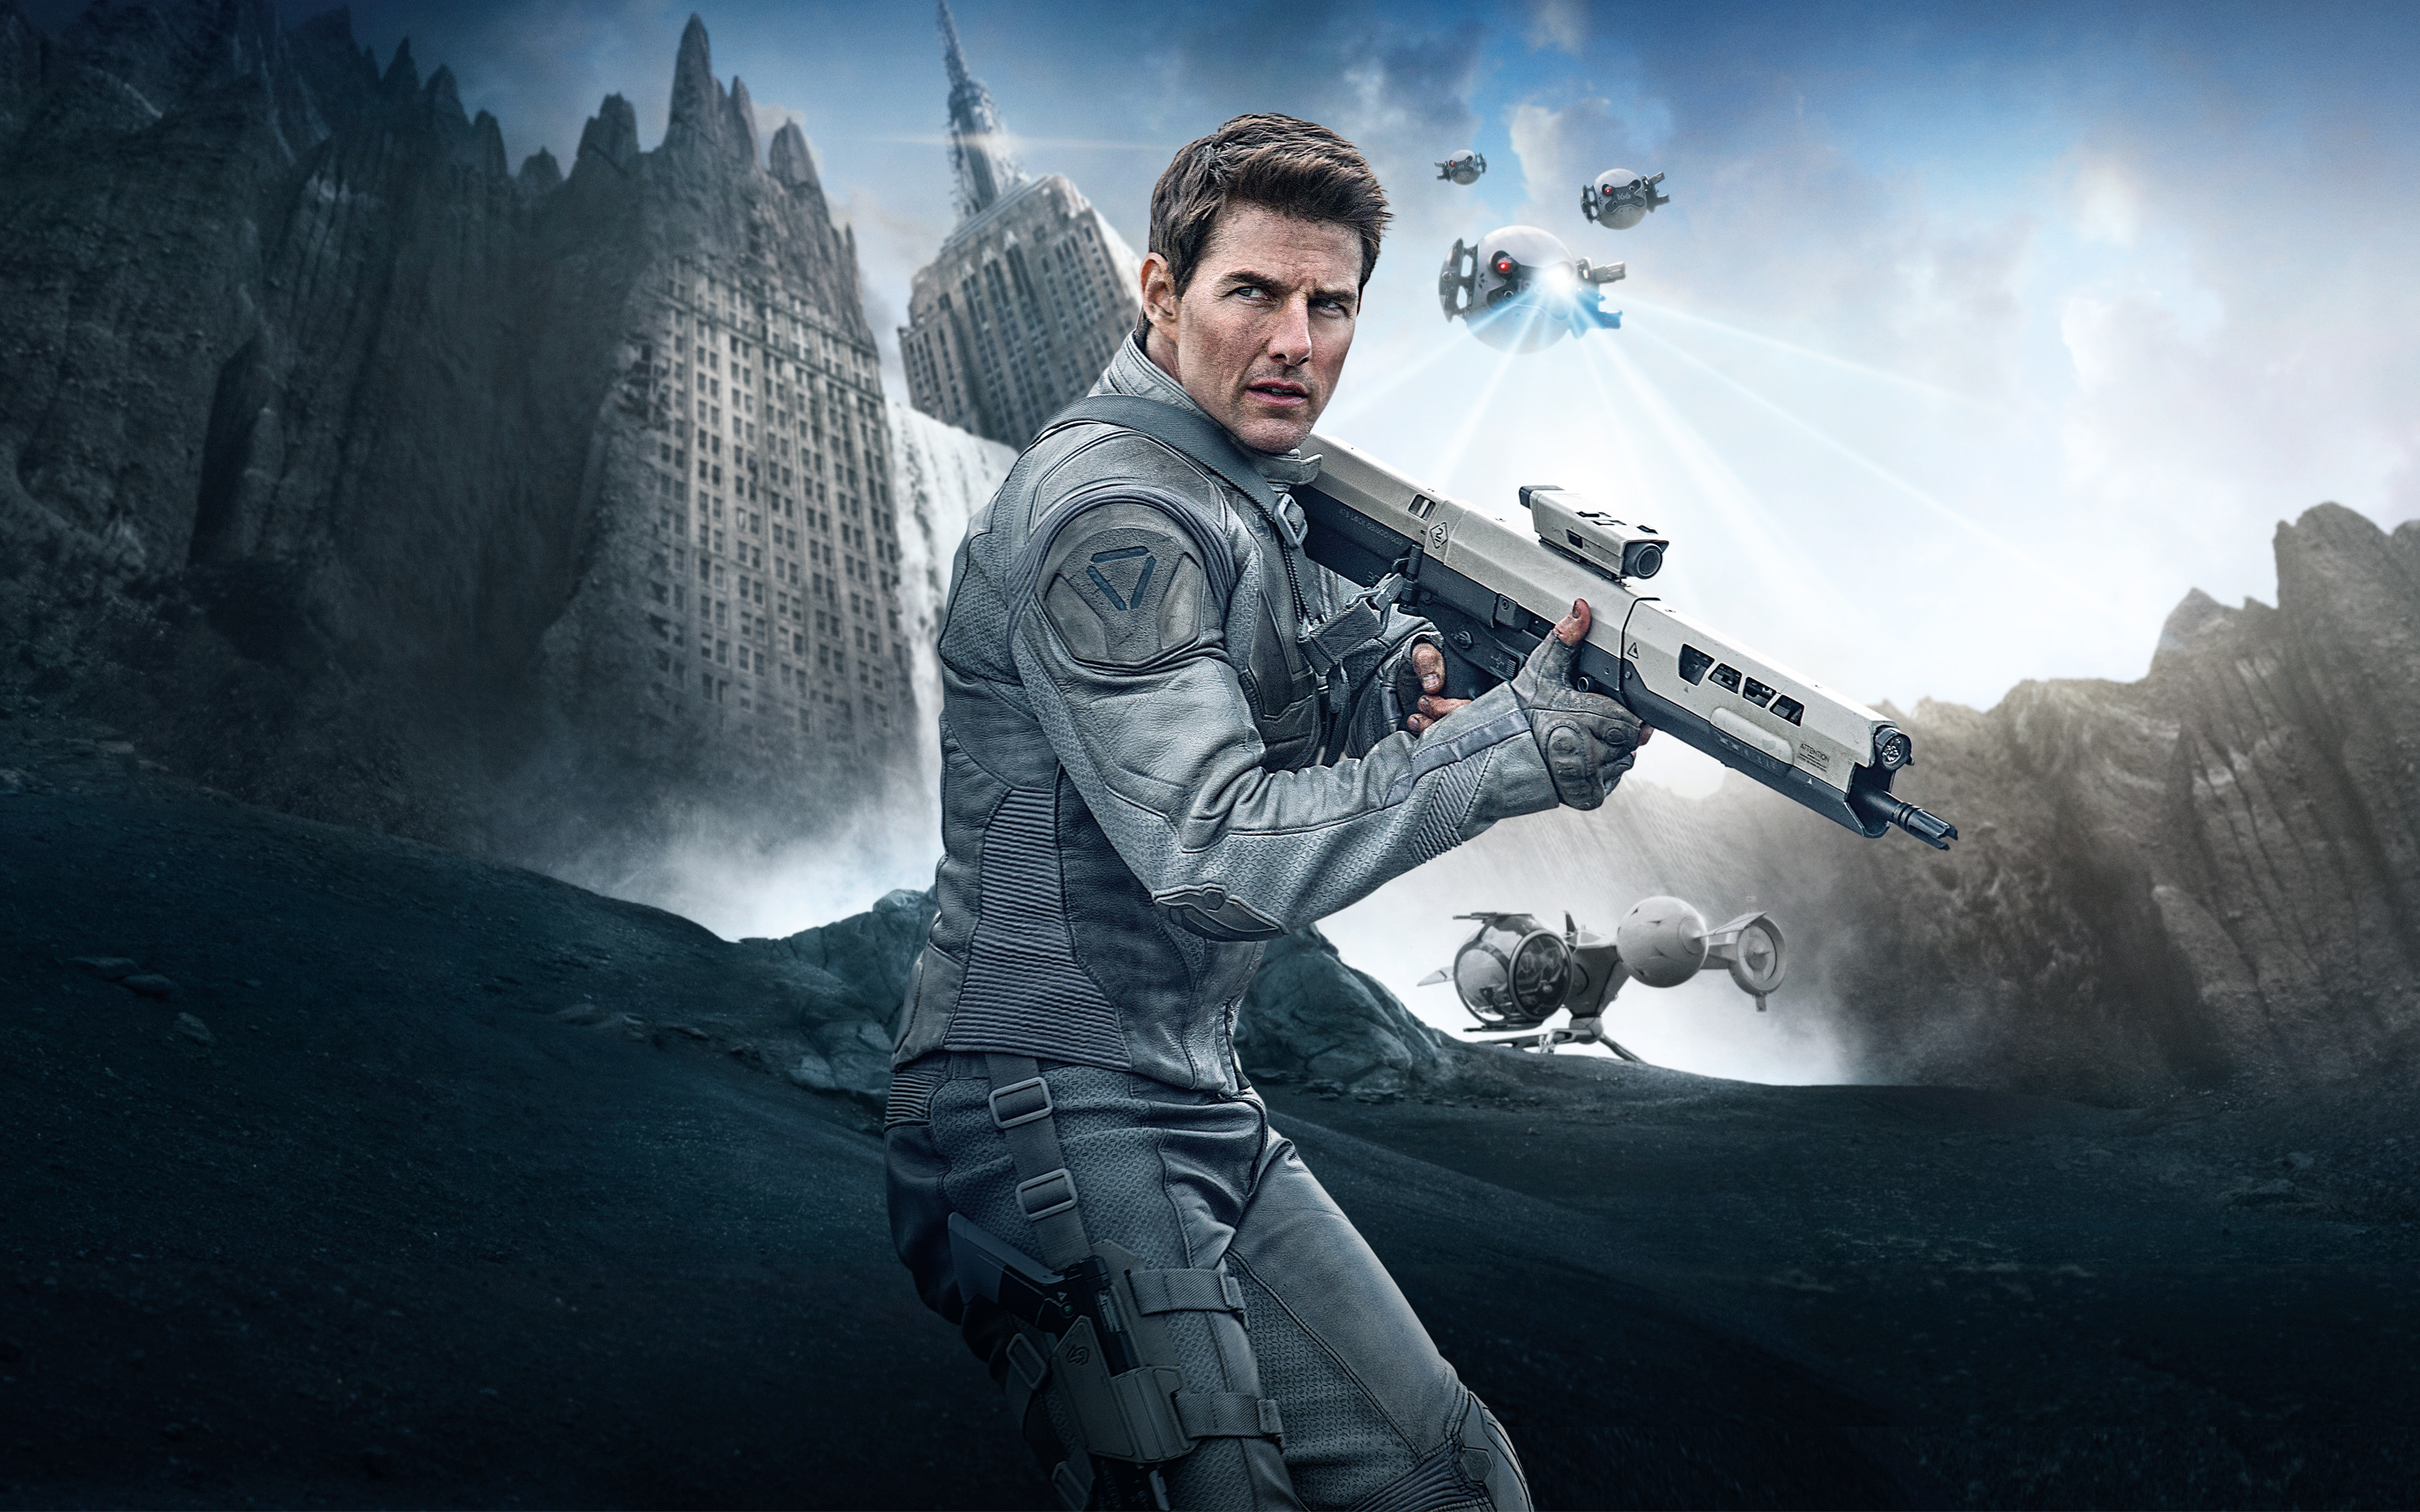 Tom Cruise in Oblivion Wallpapers HD Wallpapers 2880x1800